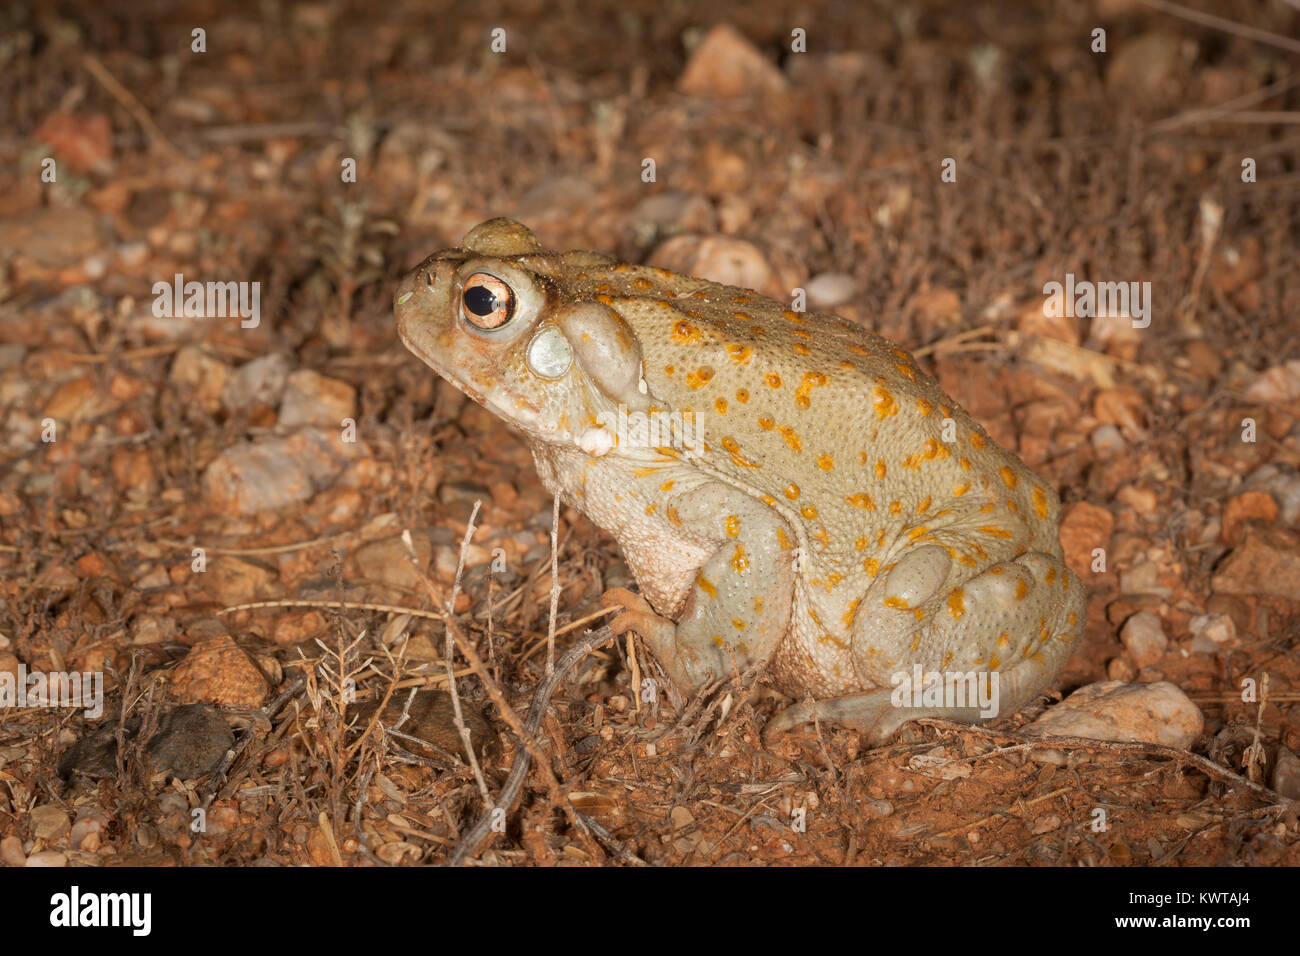 Sonoran desert toad (Colorado River toad), Incilius alvarius (Bufo alvarius). Poison glands behind head and on legs - Stock Image